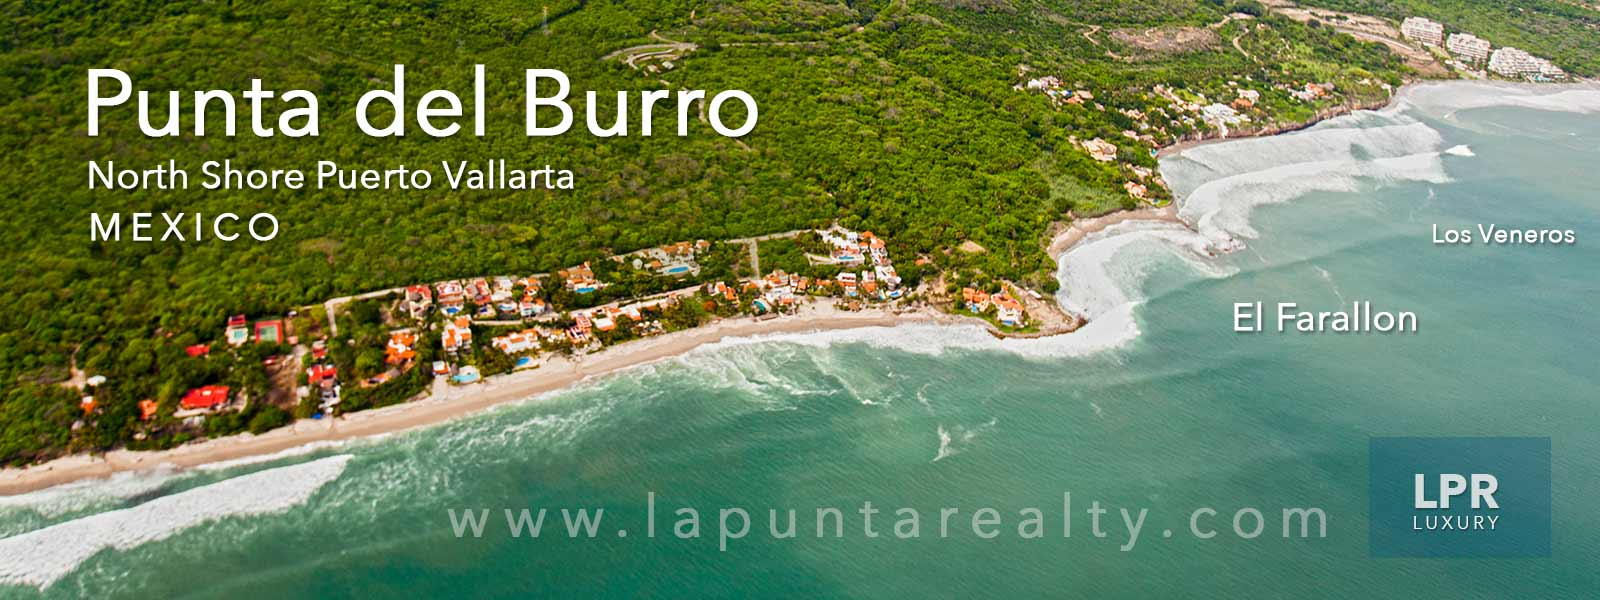 Punta del Burro - Luxury Punta de Mita Real Estate - Puerto Vallarta, Mexico